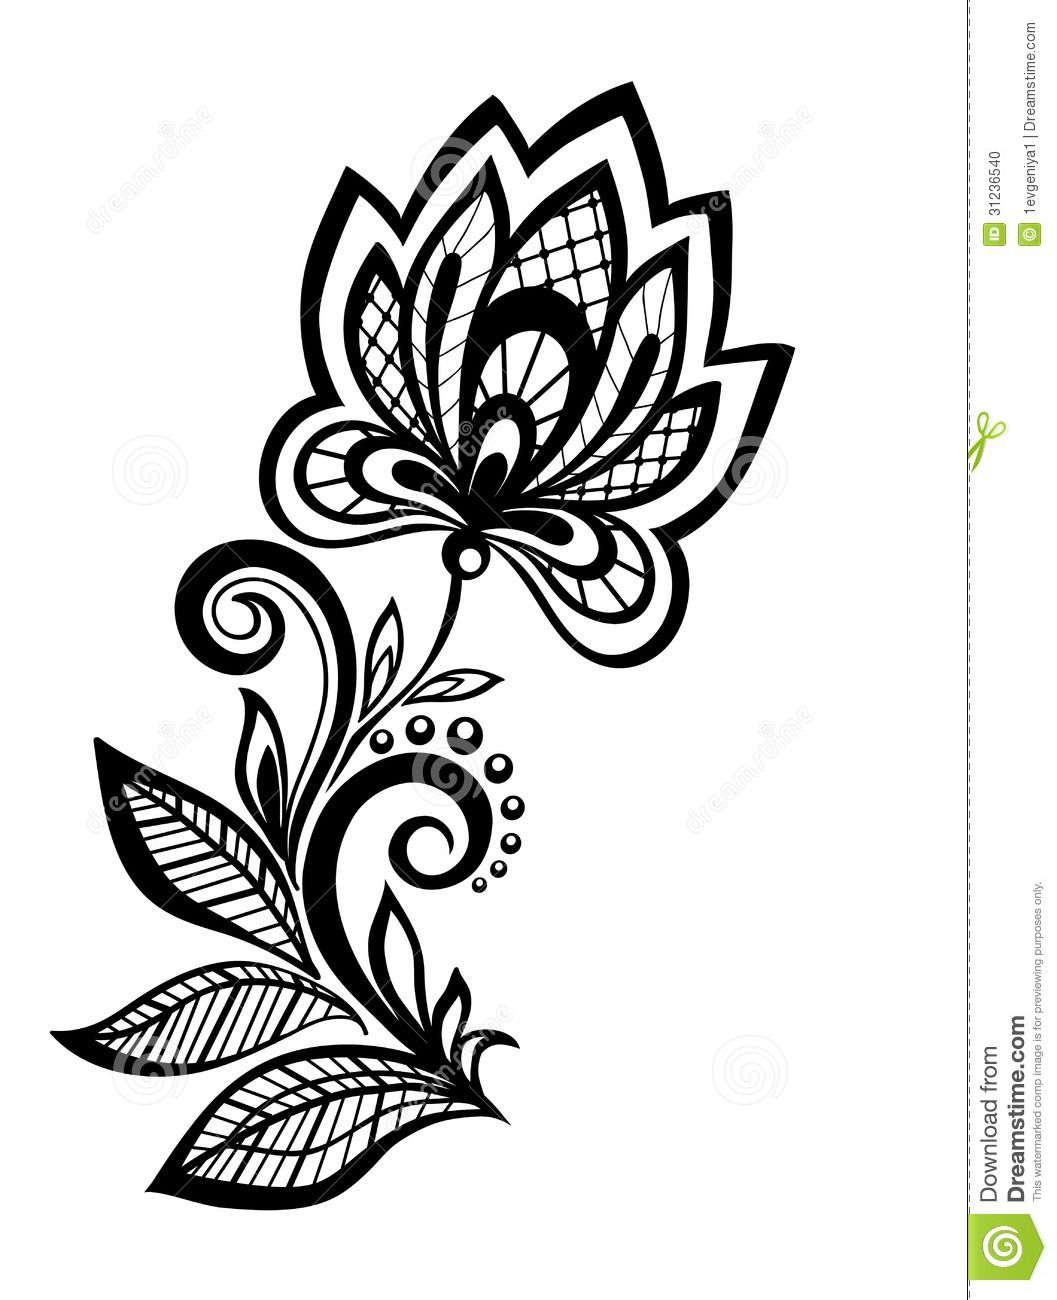 Six Black Flower Design Stock Images: Black And White Floral Pattern Design Element. Stock Photo